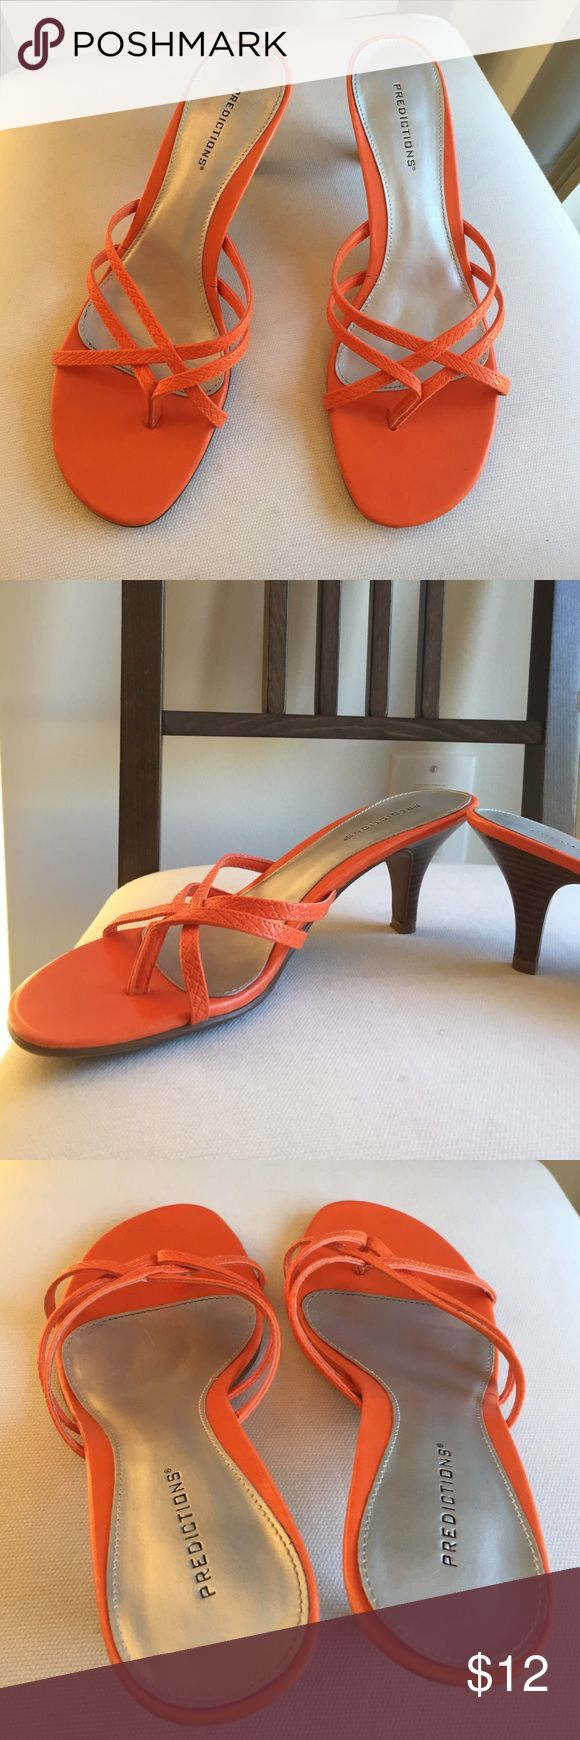 Orange strappy heels Sz 8.5 Predictions™brand dressy sandals/ open heels. Size 8.5 and in excellent condition. Predictions Shoes Heels